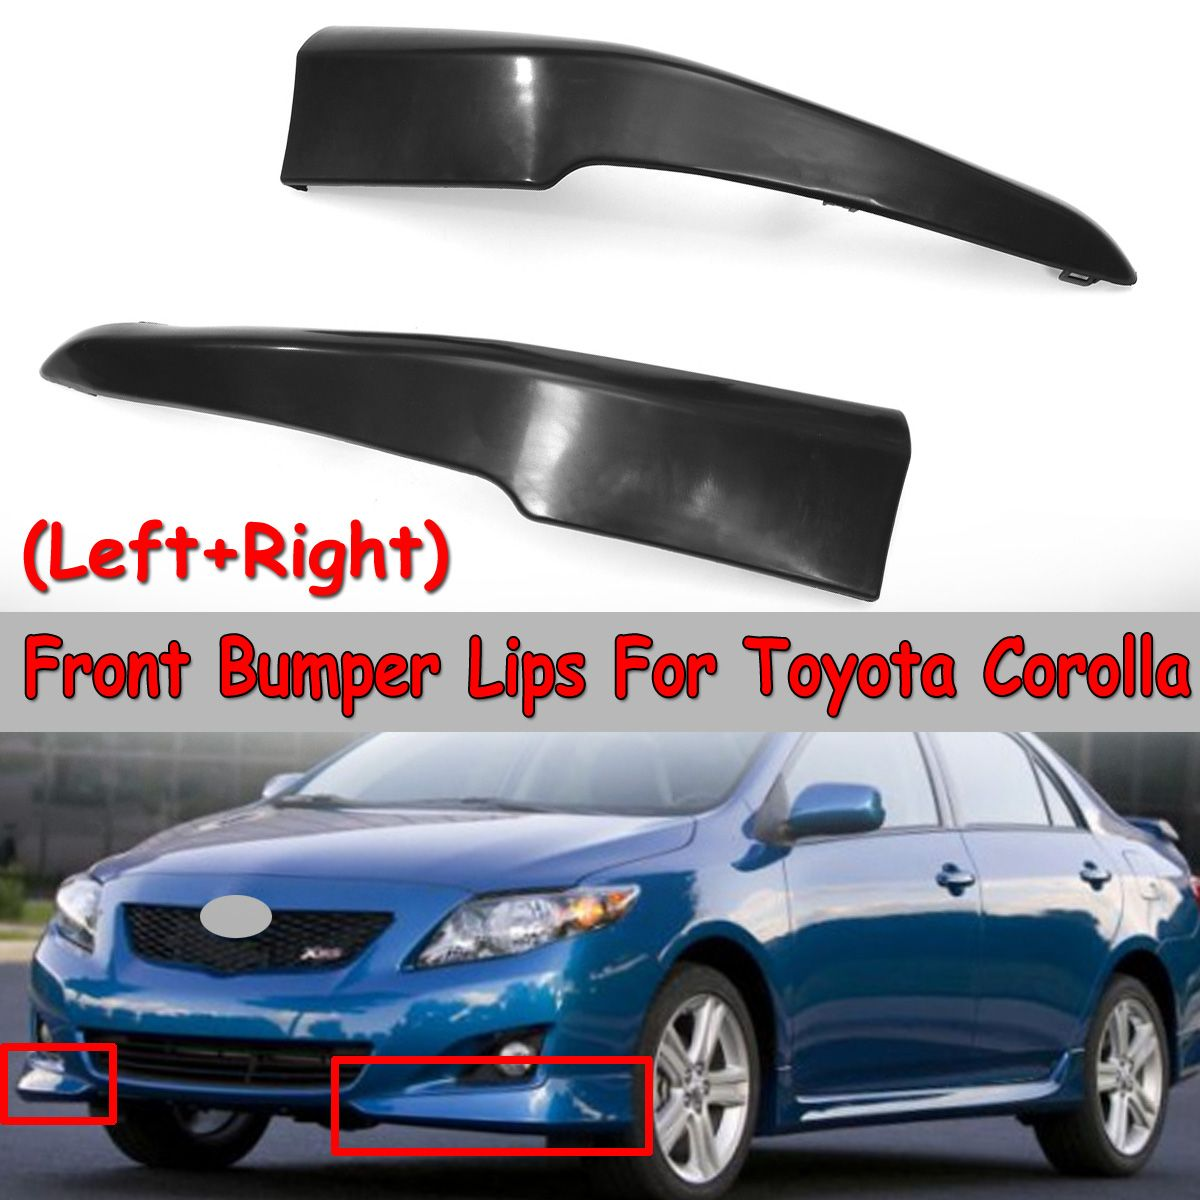 New 2x Car Front Bumper Corolla Splitter Lips For Toyota Corolla 2009 2010 S Factory Style